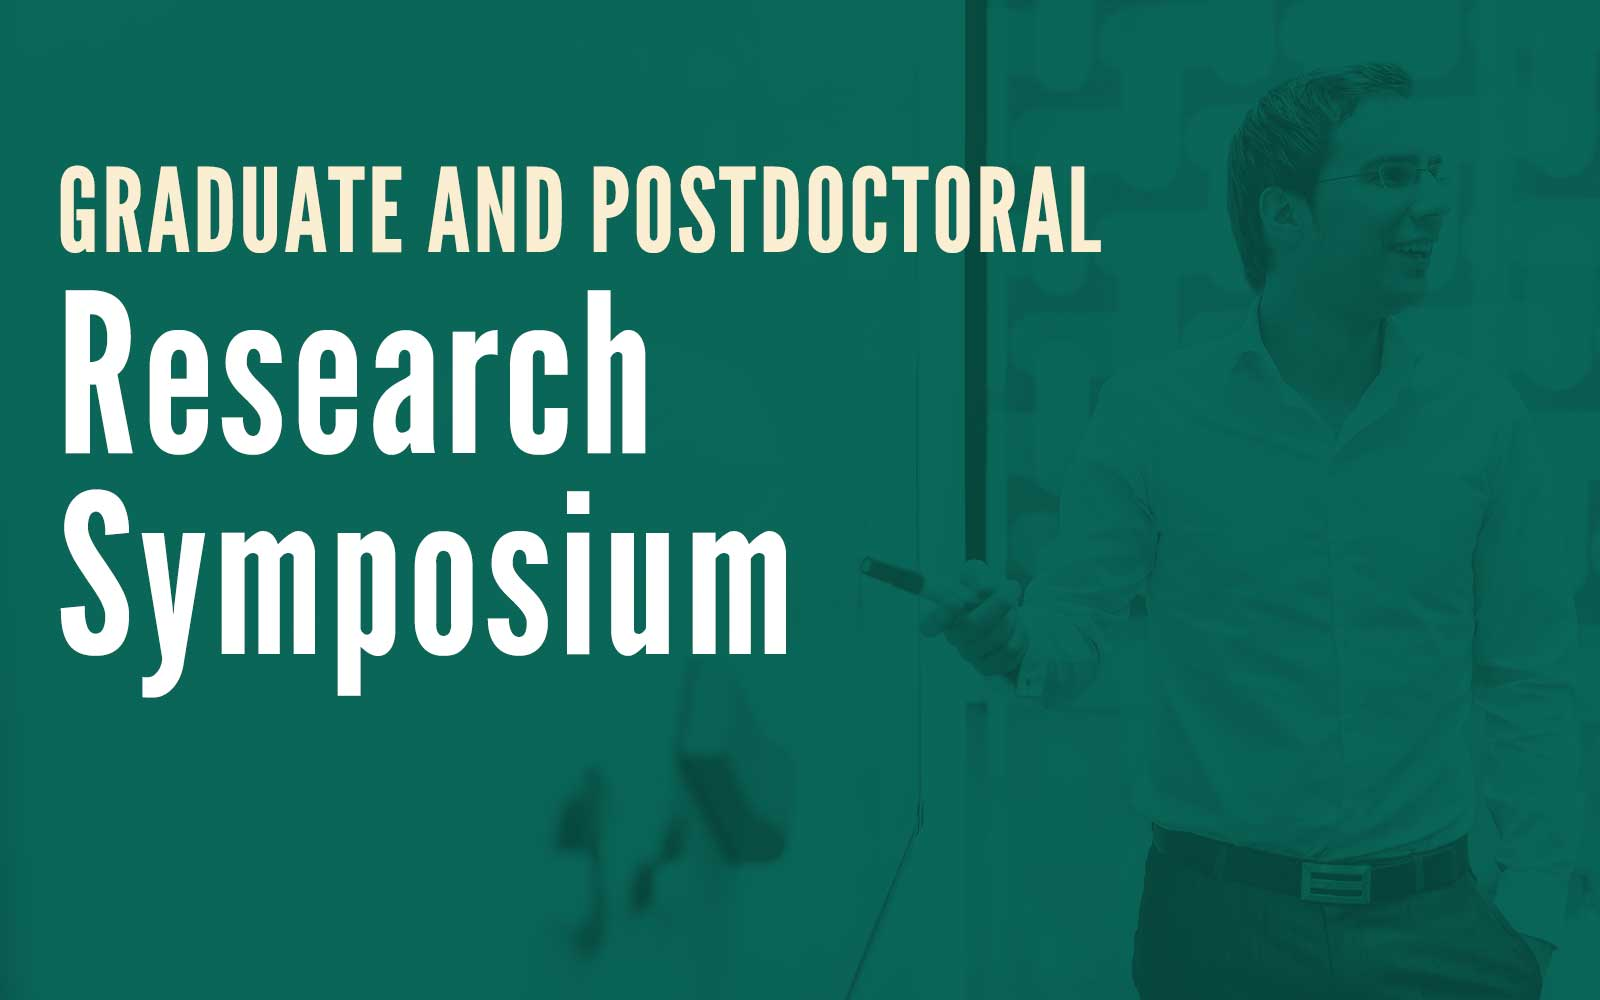 Poster presentations, thesis competition and recognition ceremony